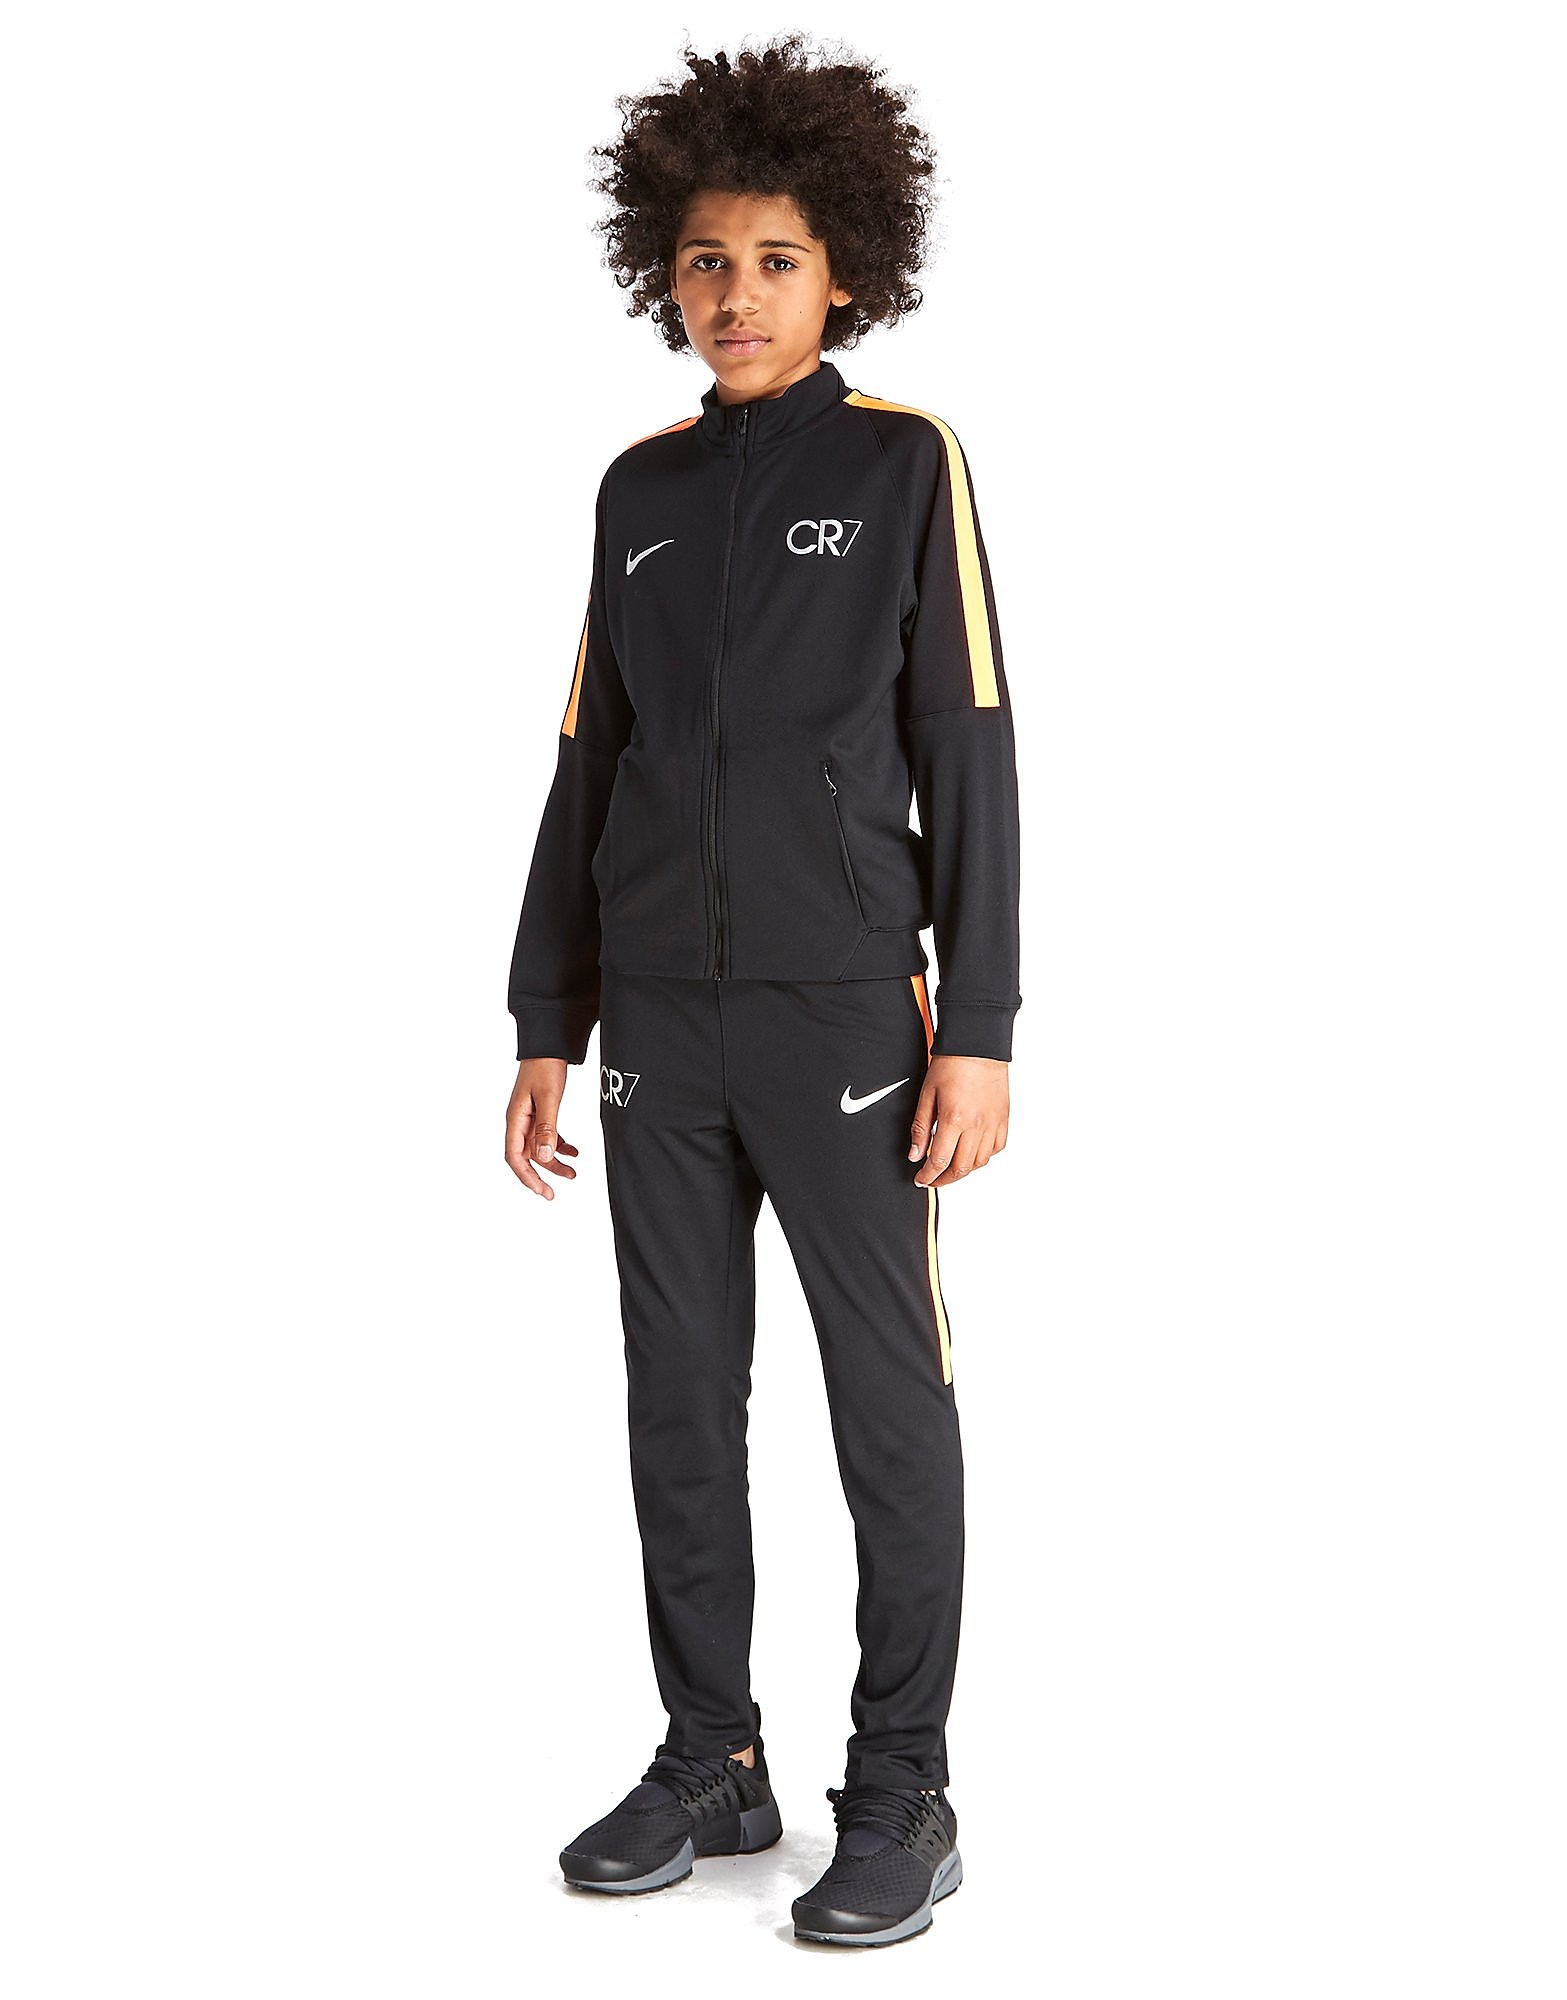 Nike CR7 Suit Junior